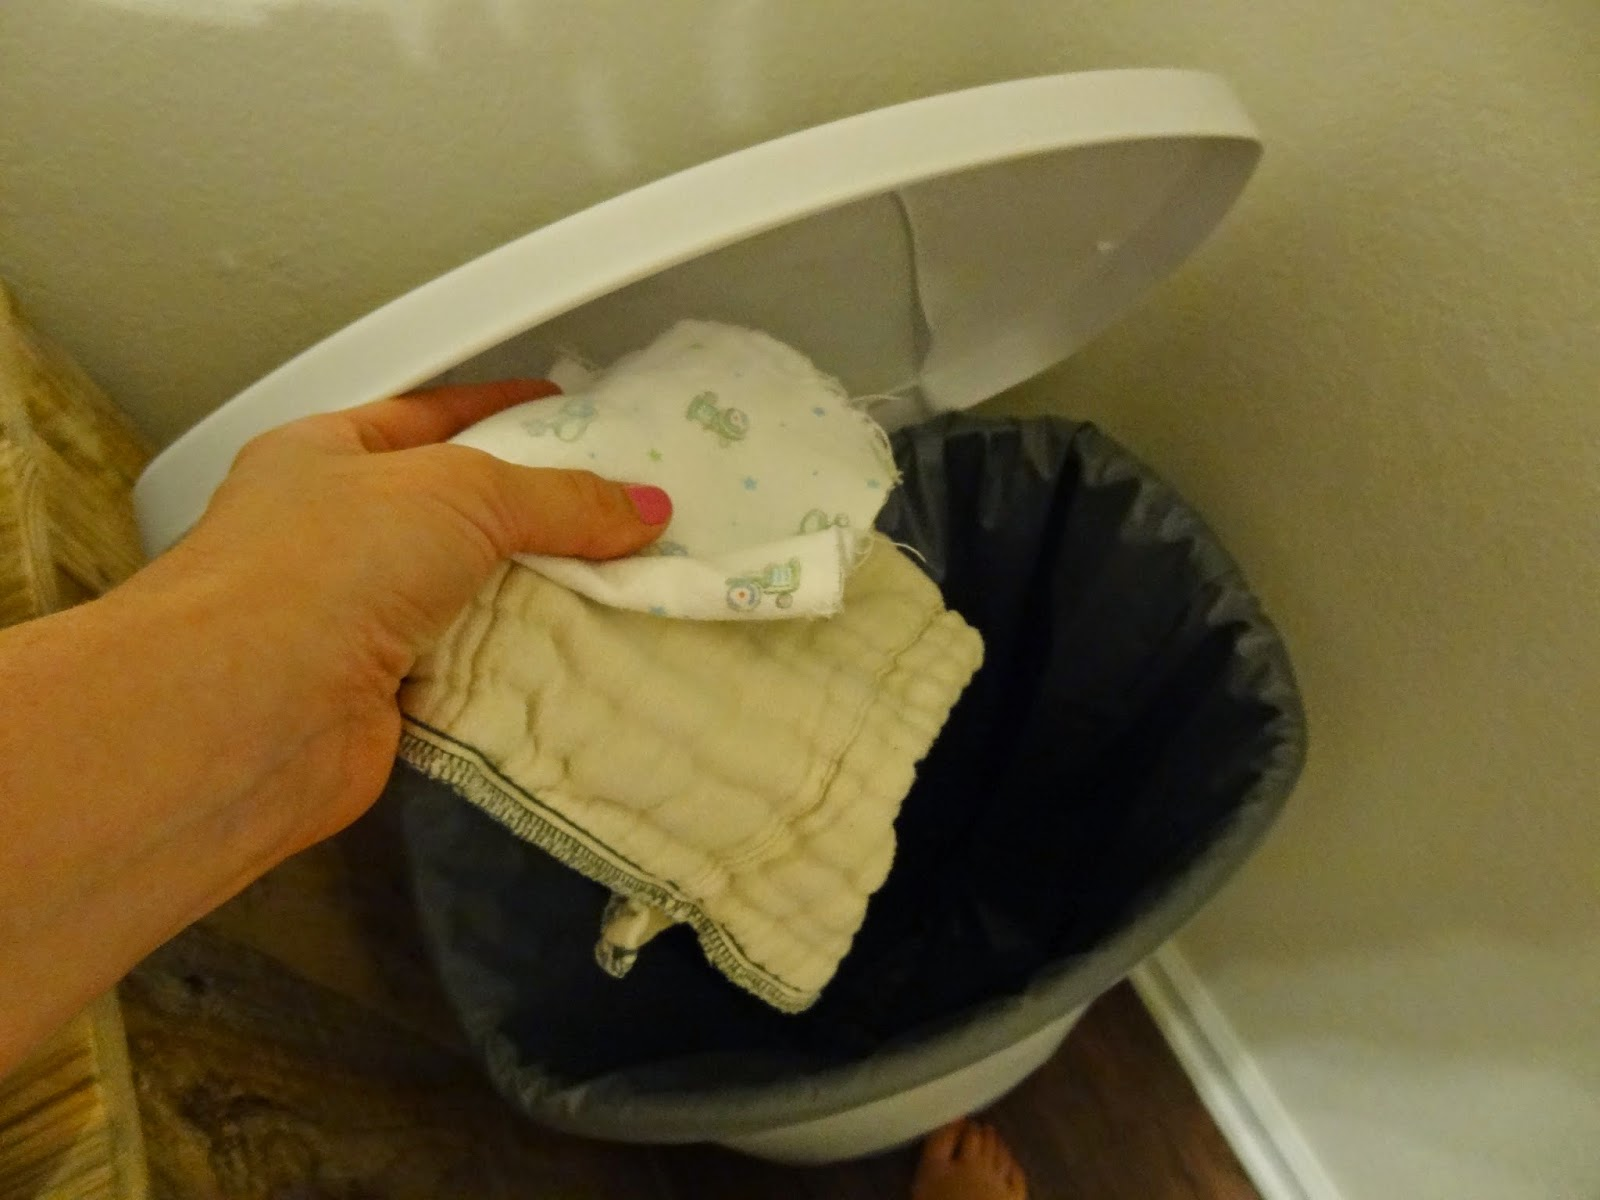 Week 2 Of Cloth Diapering A Newborn